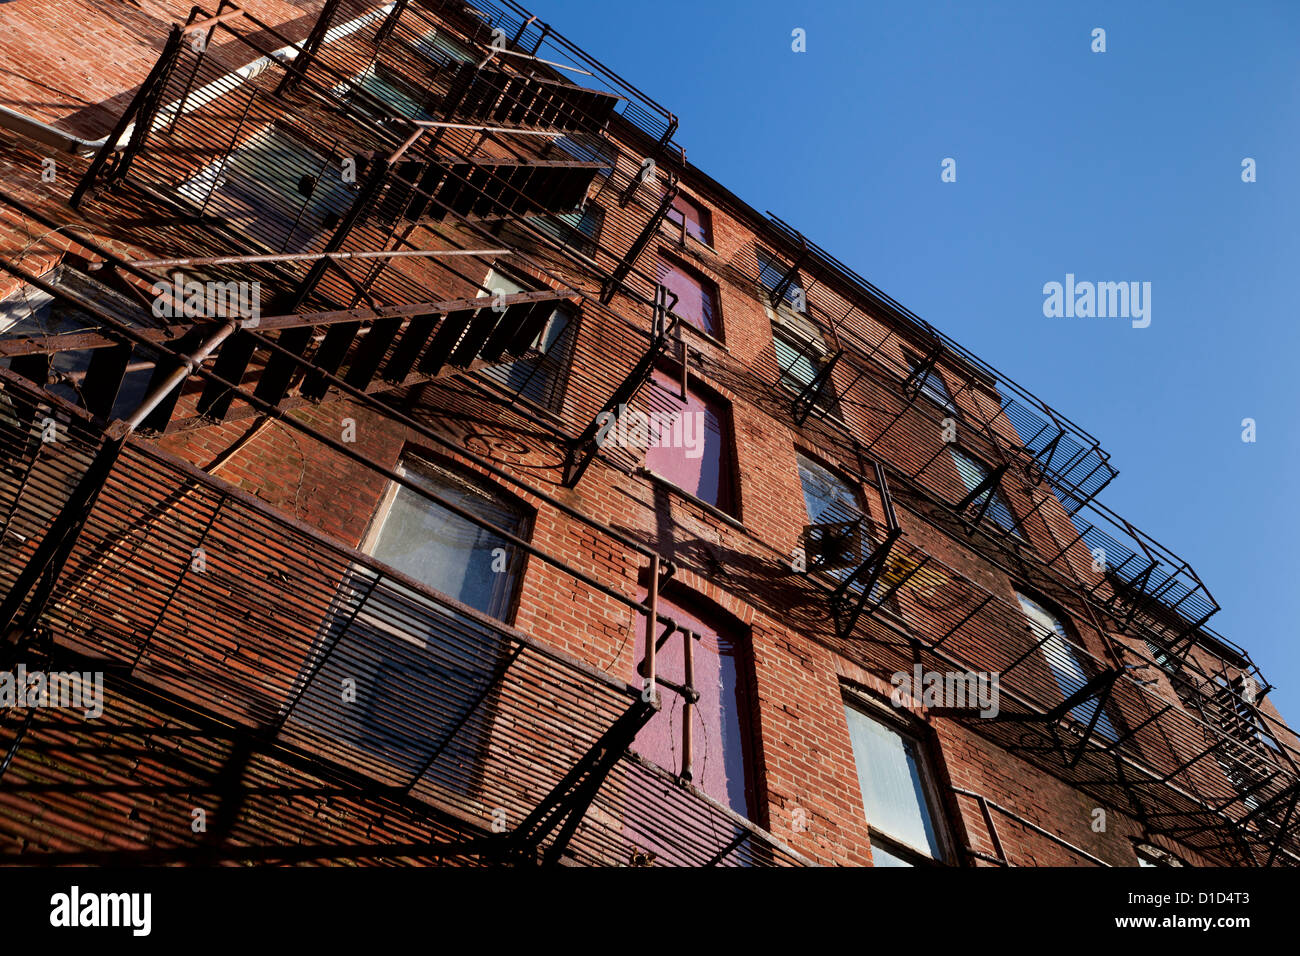 Fire Escape Stairs On An Old Brick Apartment Building